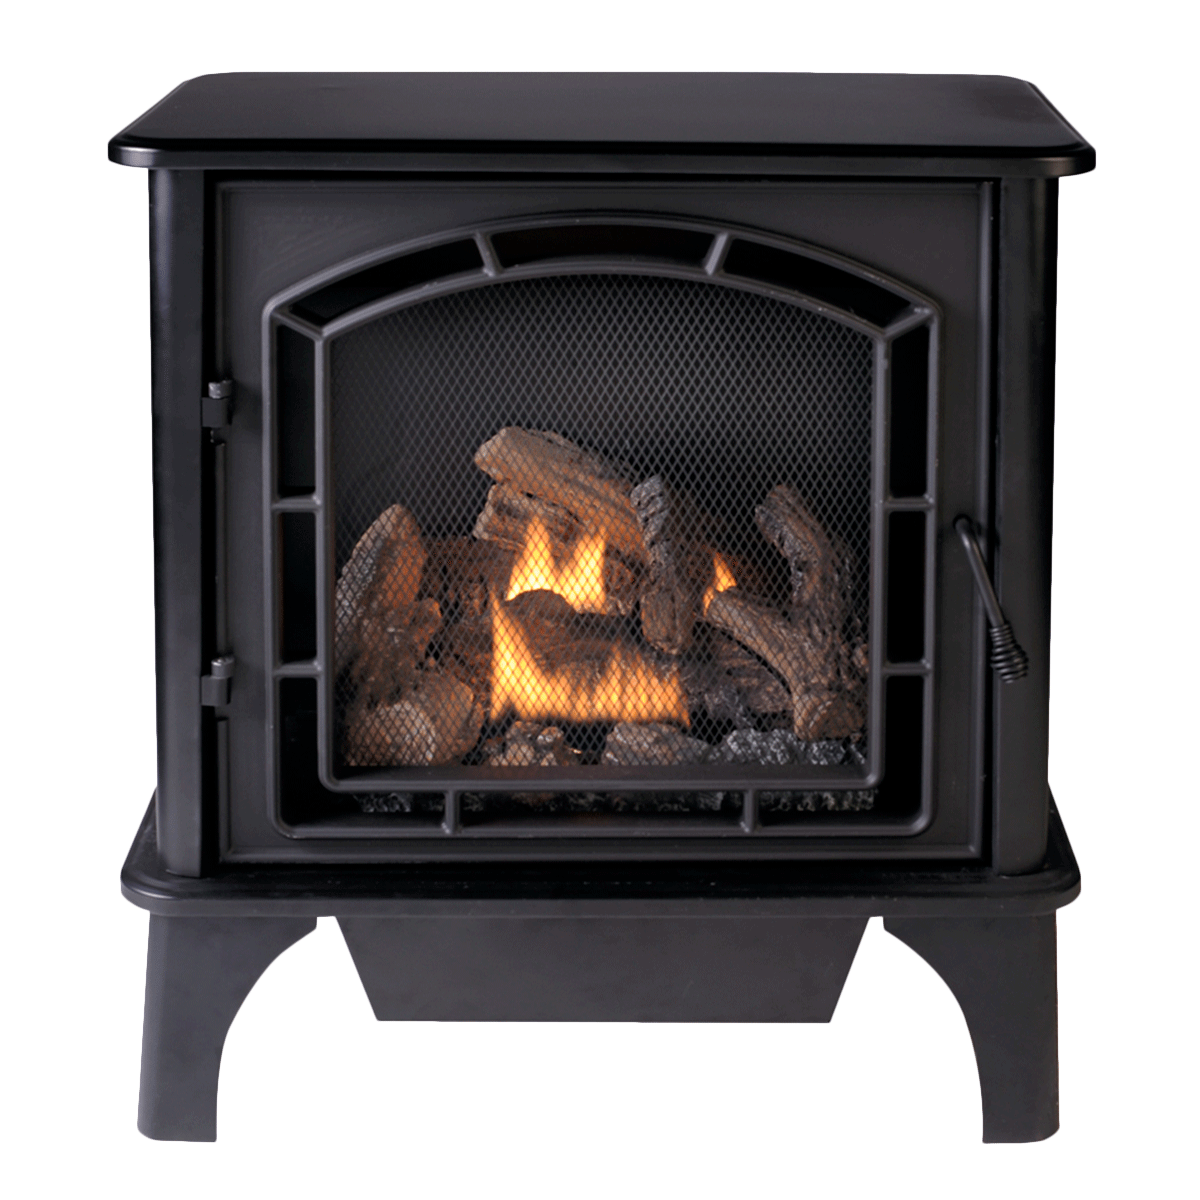 Fireplace terminology glossary of fireplace terms for Natural gas heating options